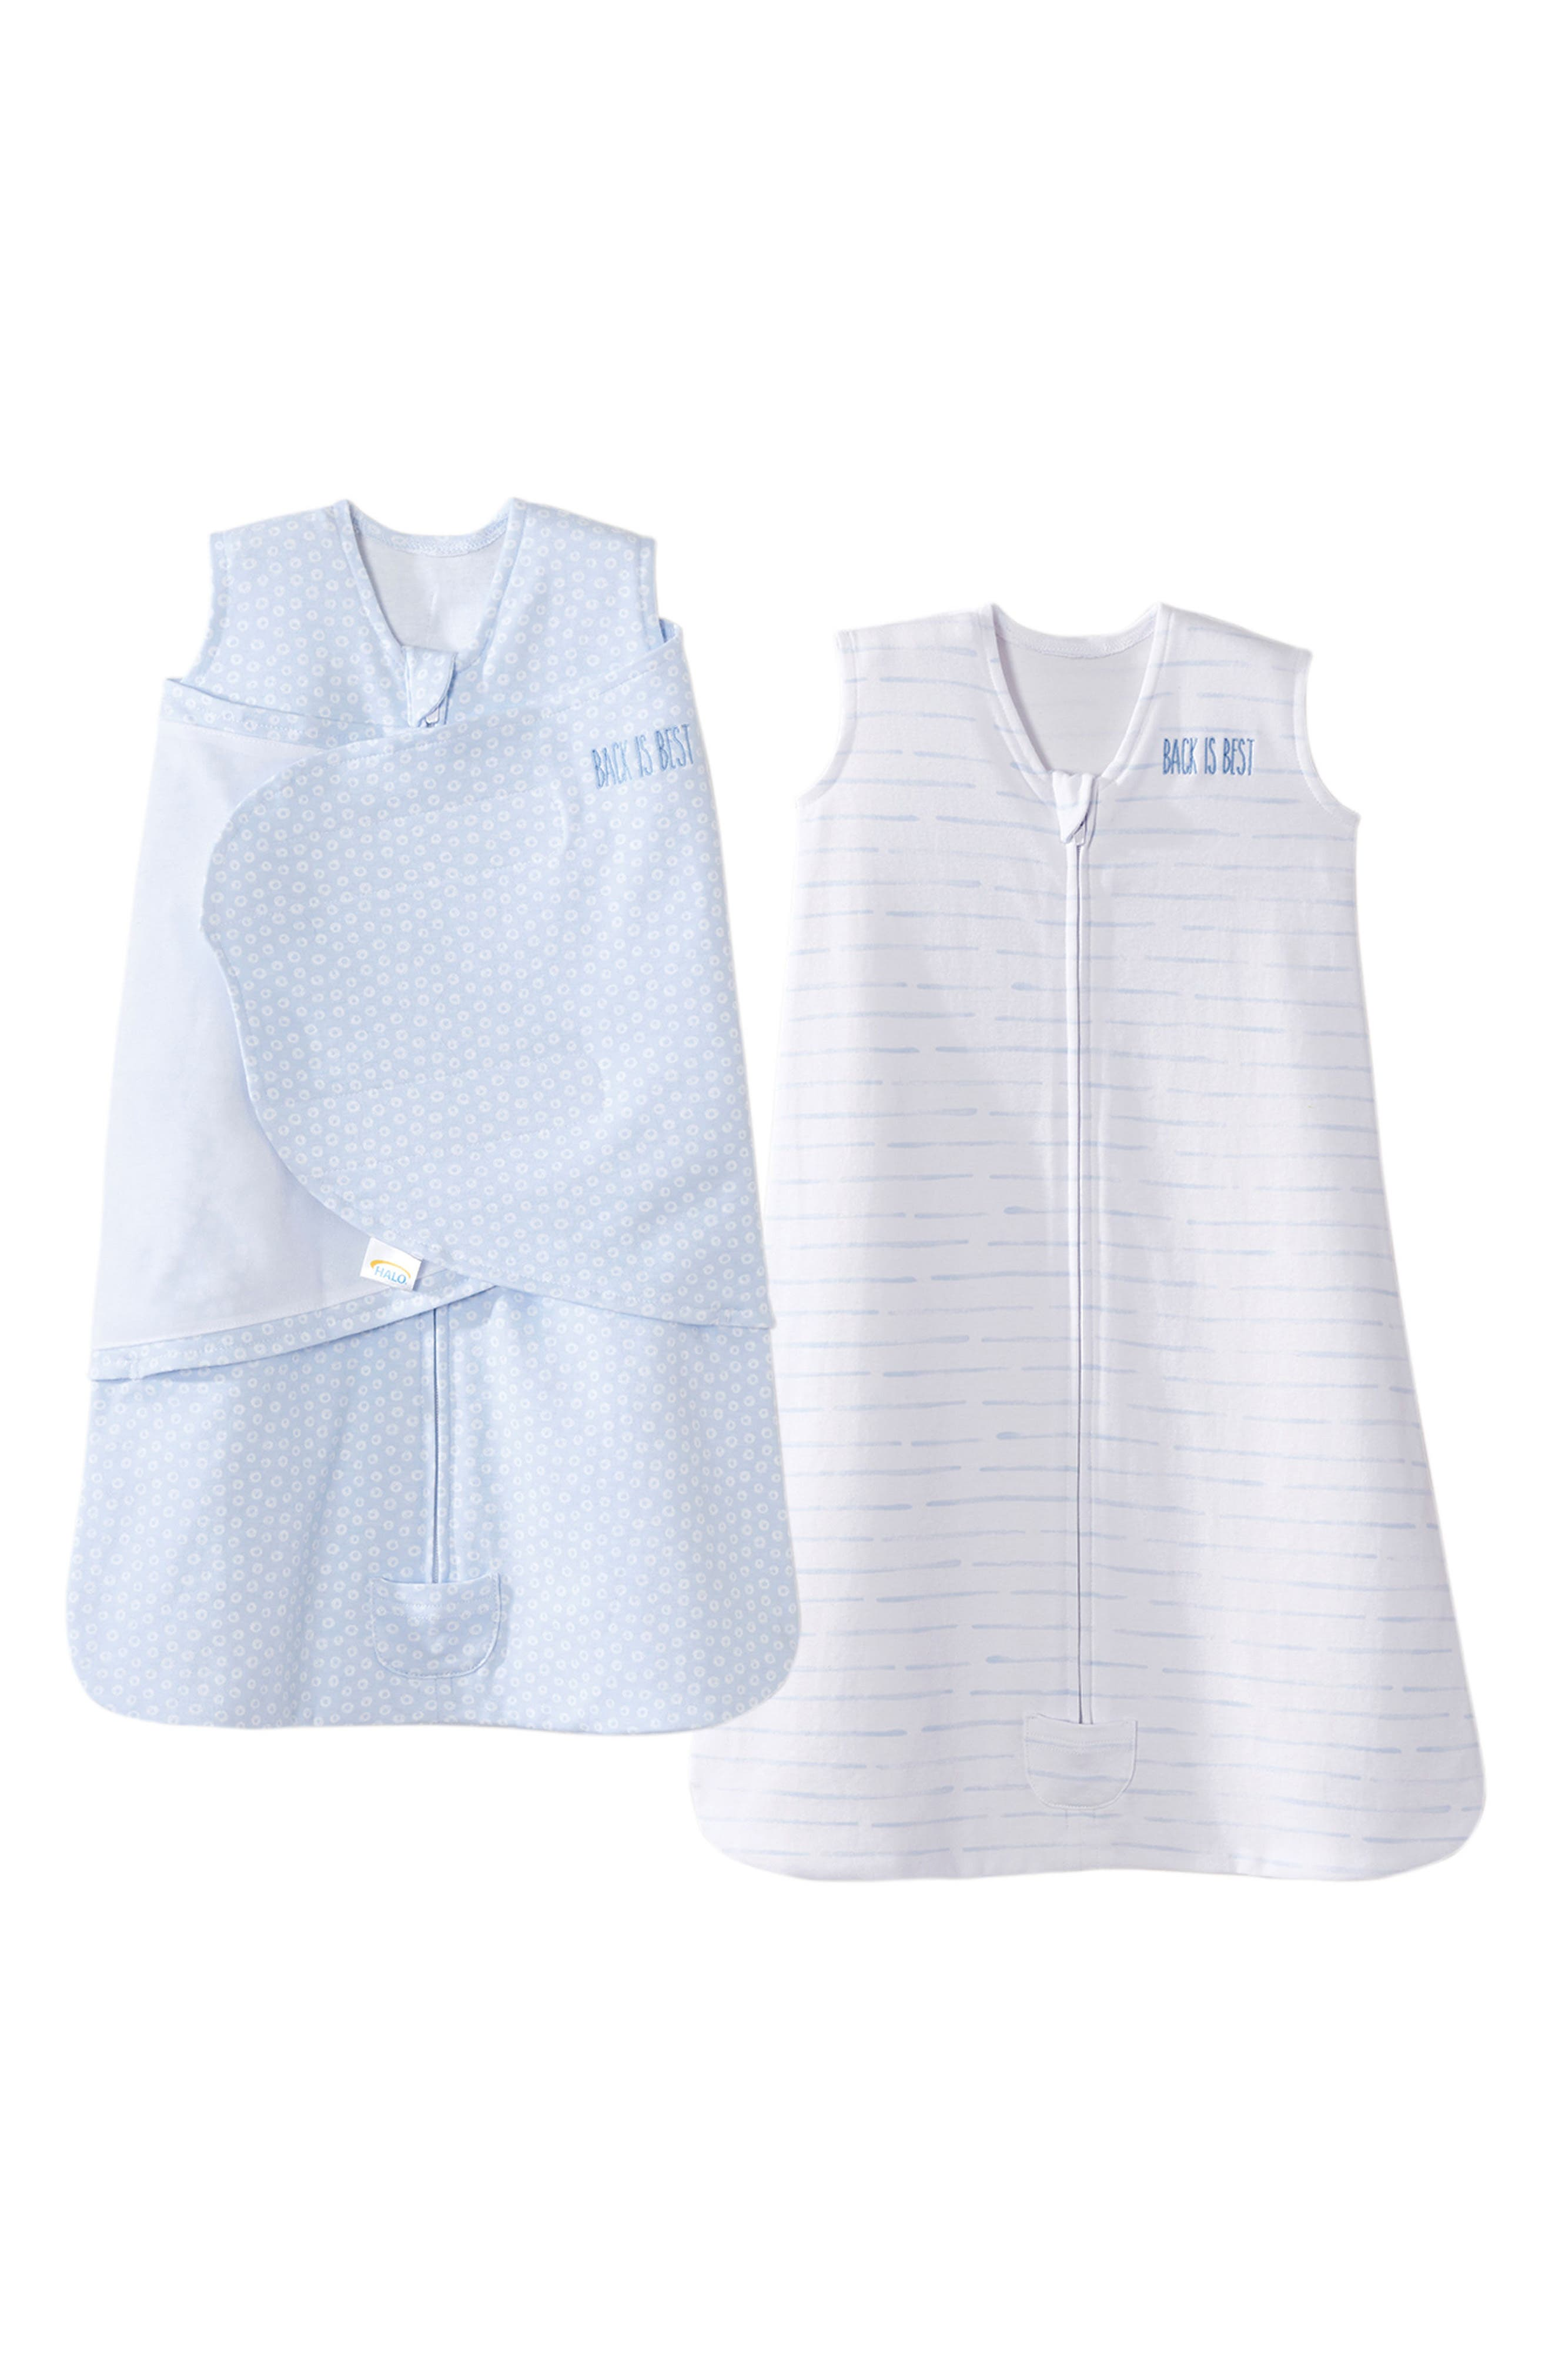 Platinum Series SleepSack<sup>™</sup> Swaddle & SleepSack<sup>™</sup> Set,                         Main,                         color, Blue Tiny Circles And Lines